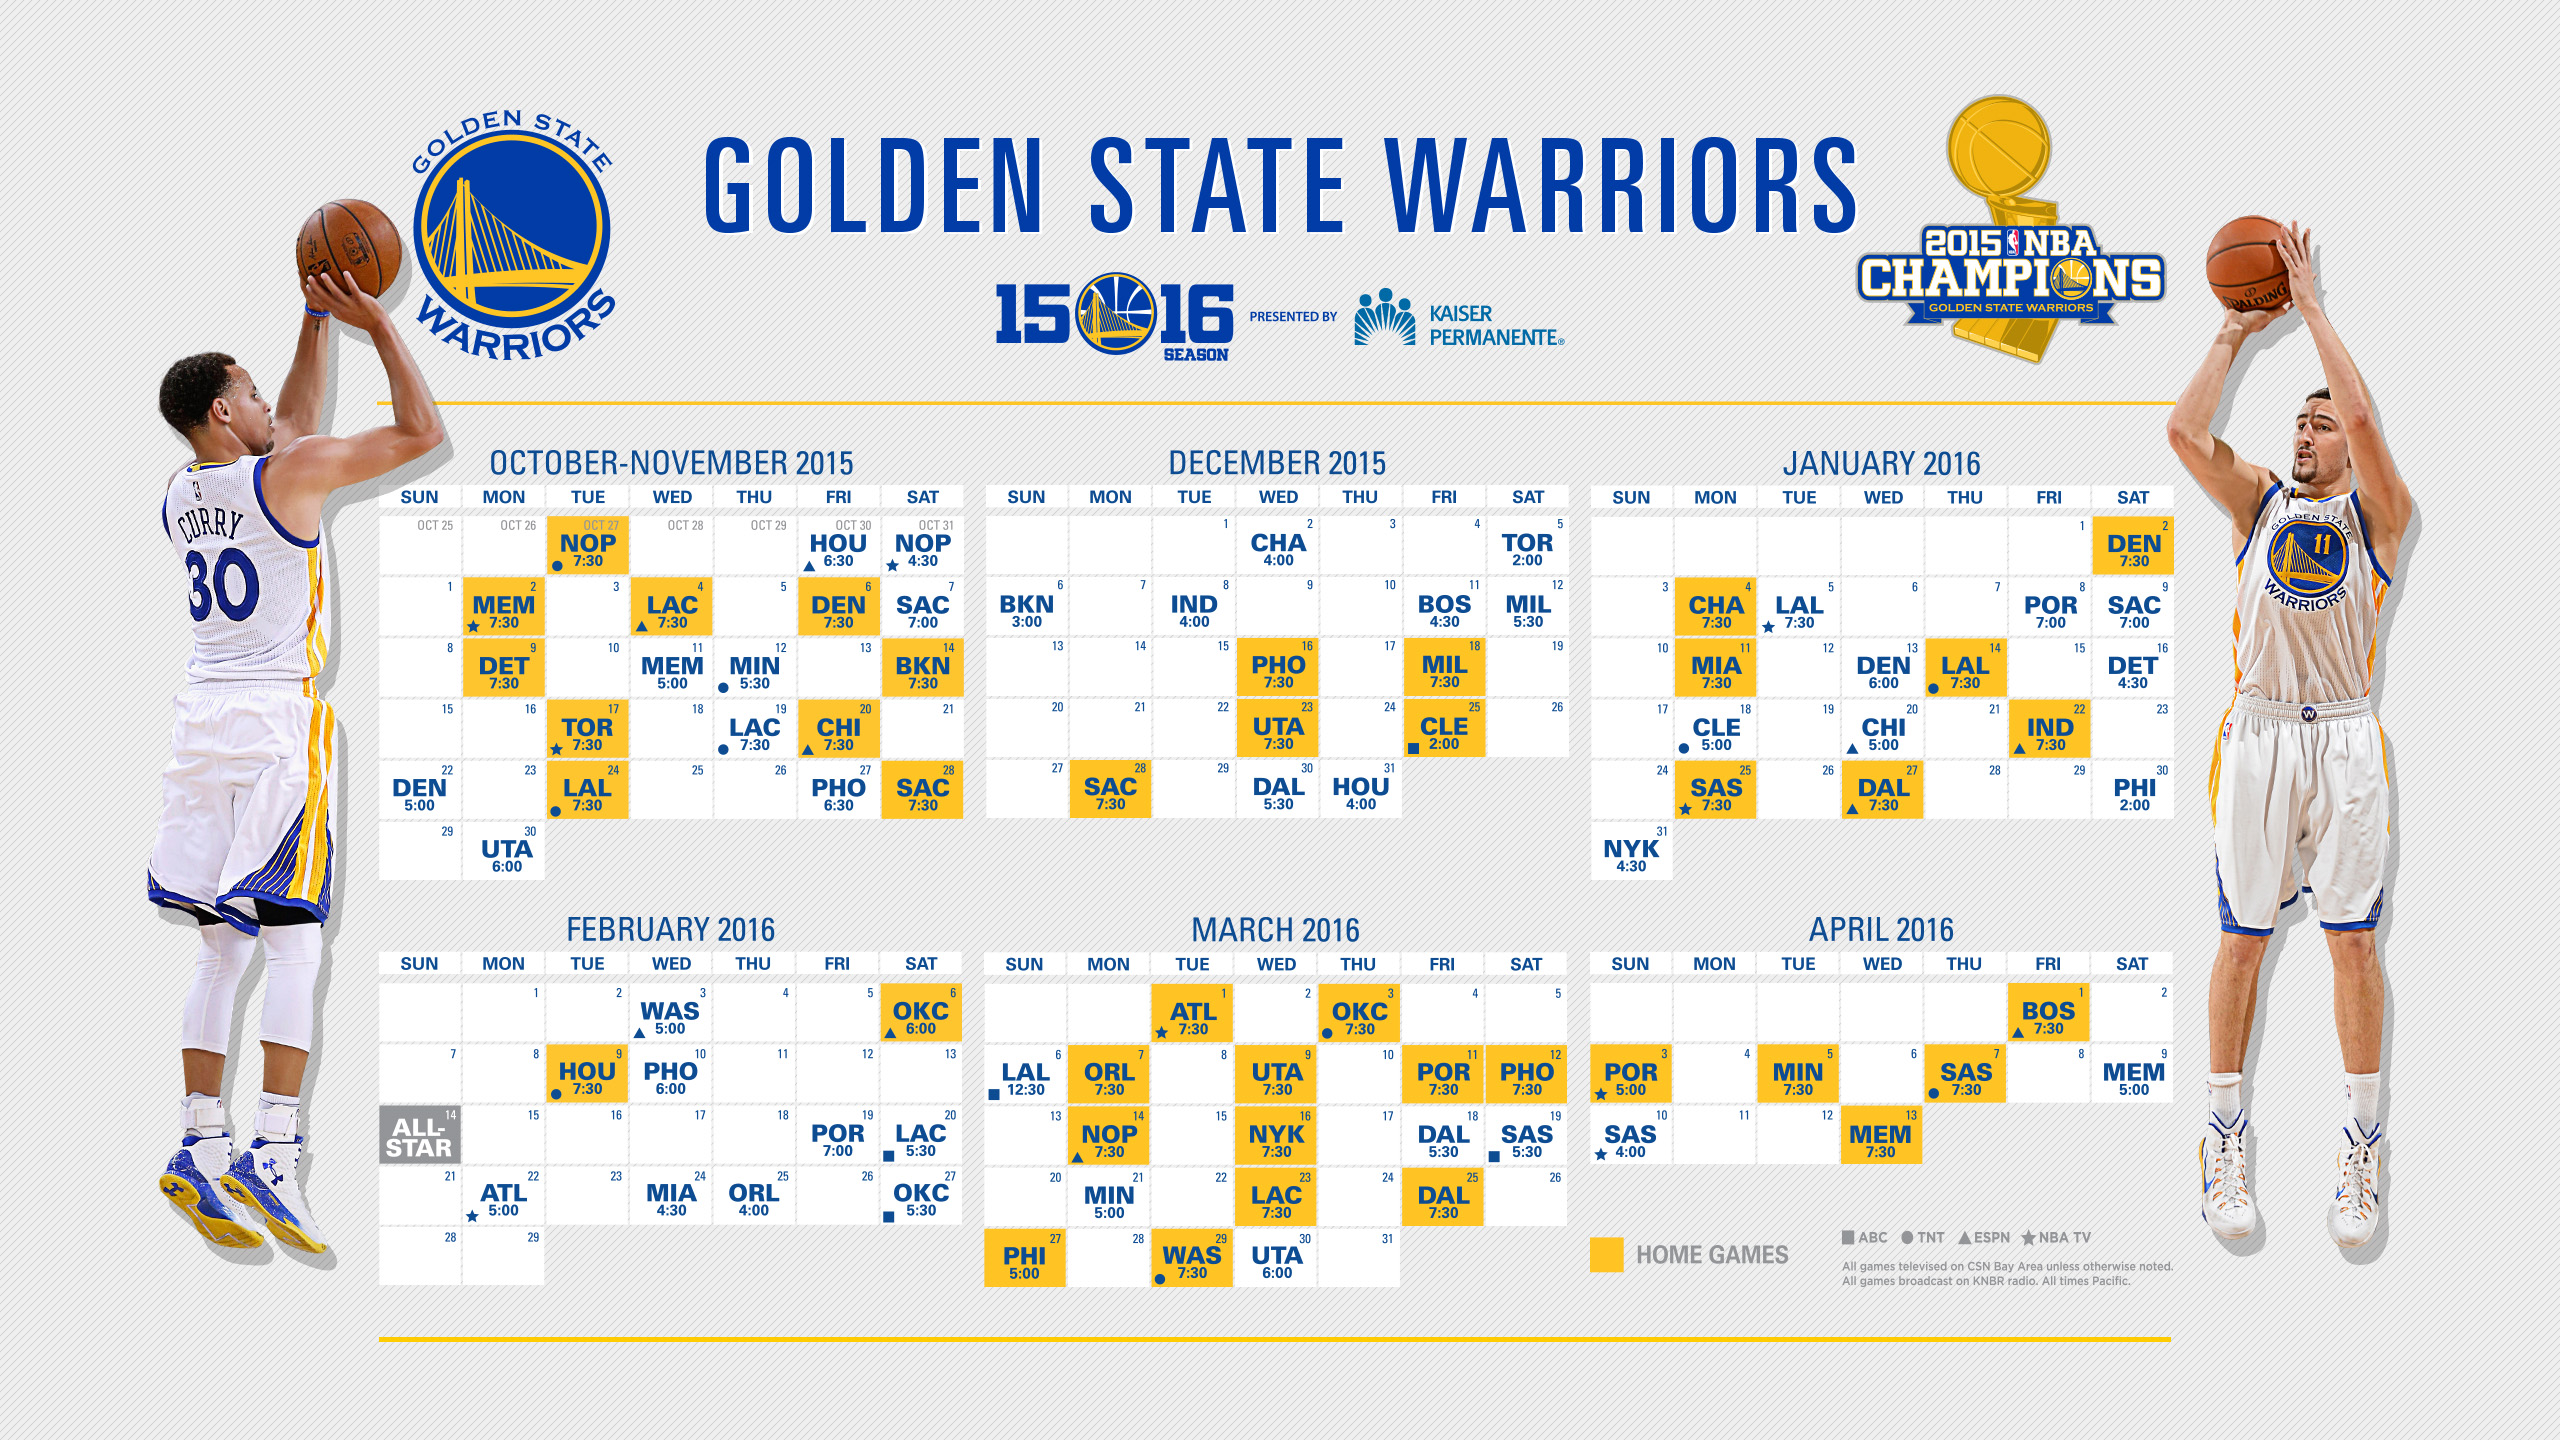 photograph about Warriors Printable Schedule referred to as NBA Winner Golden Nation Warriors Announce Agenda for